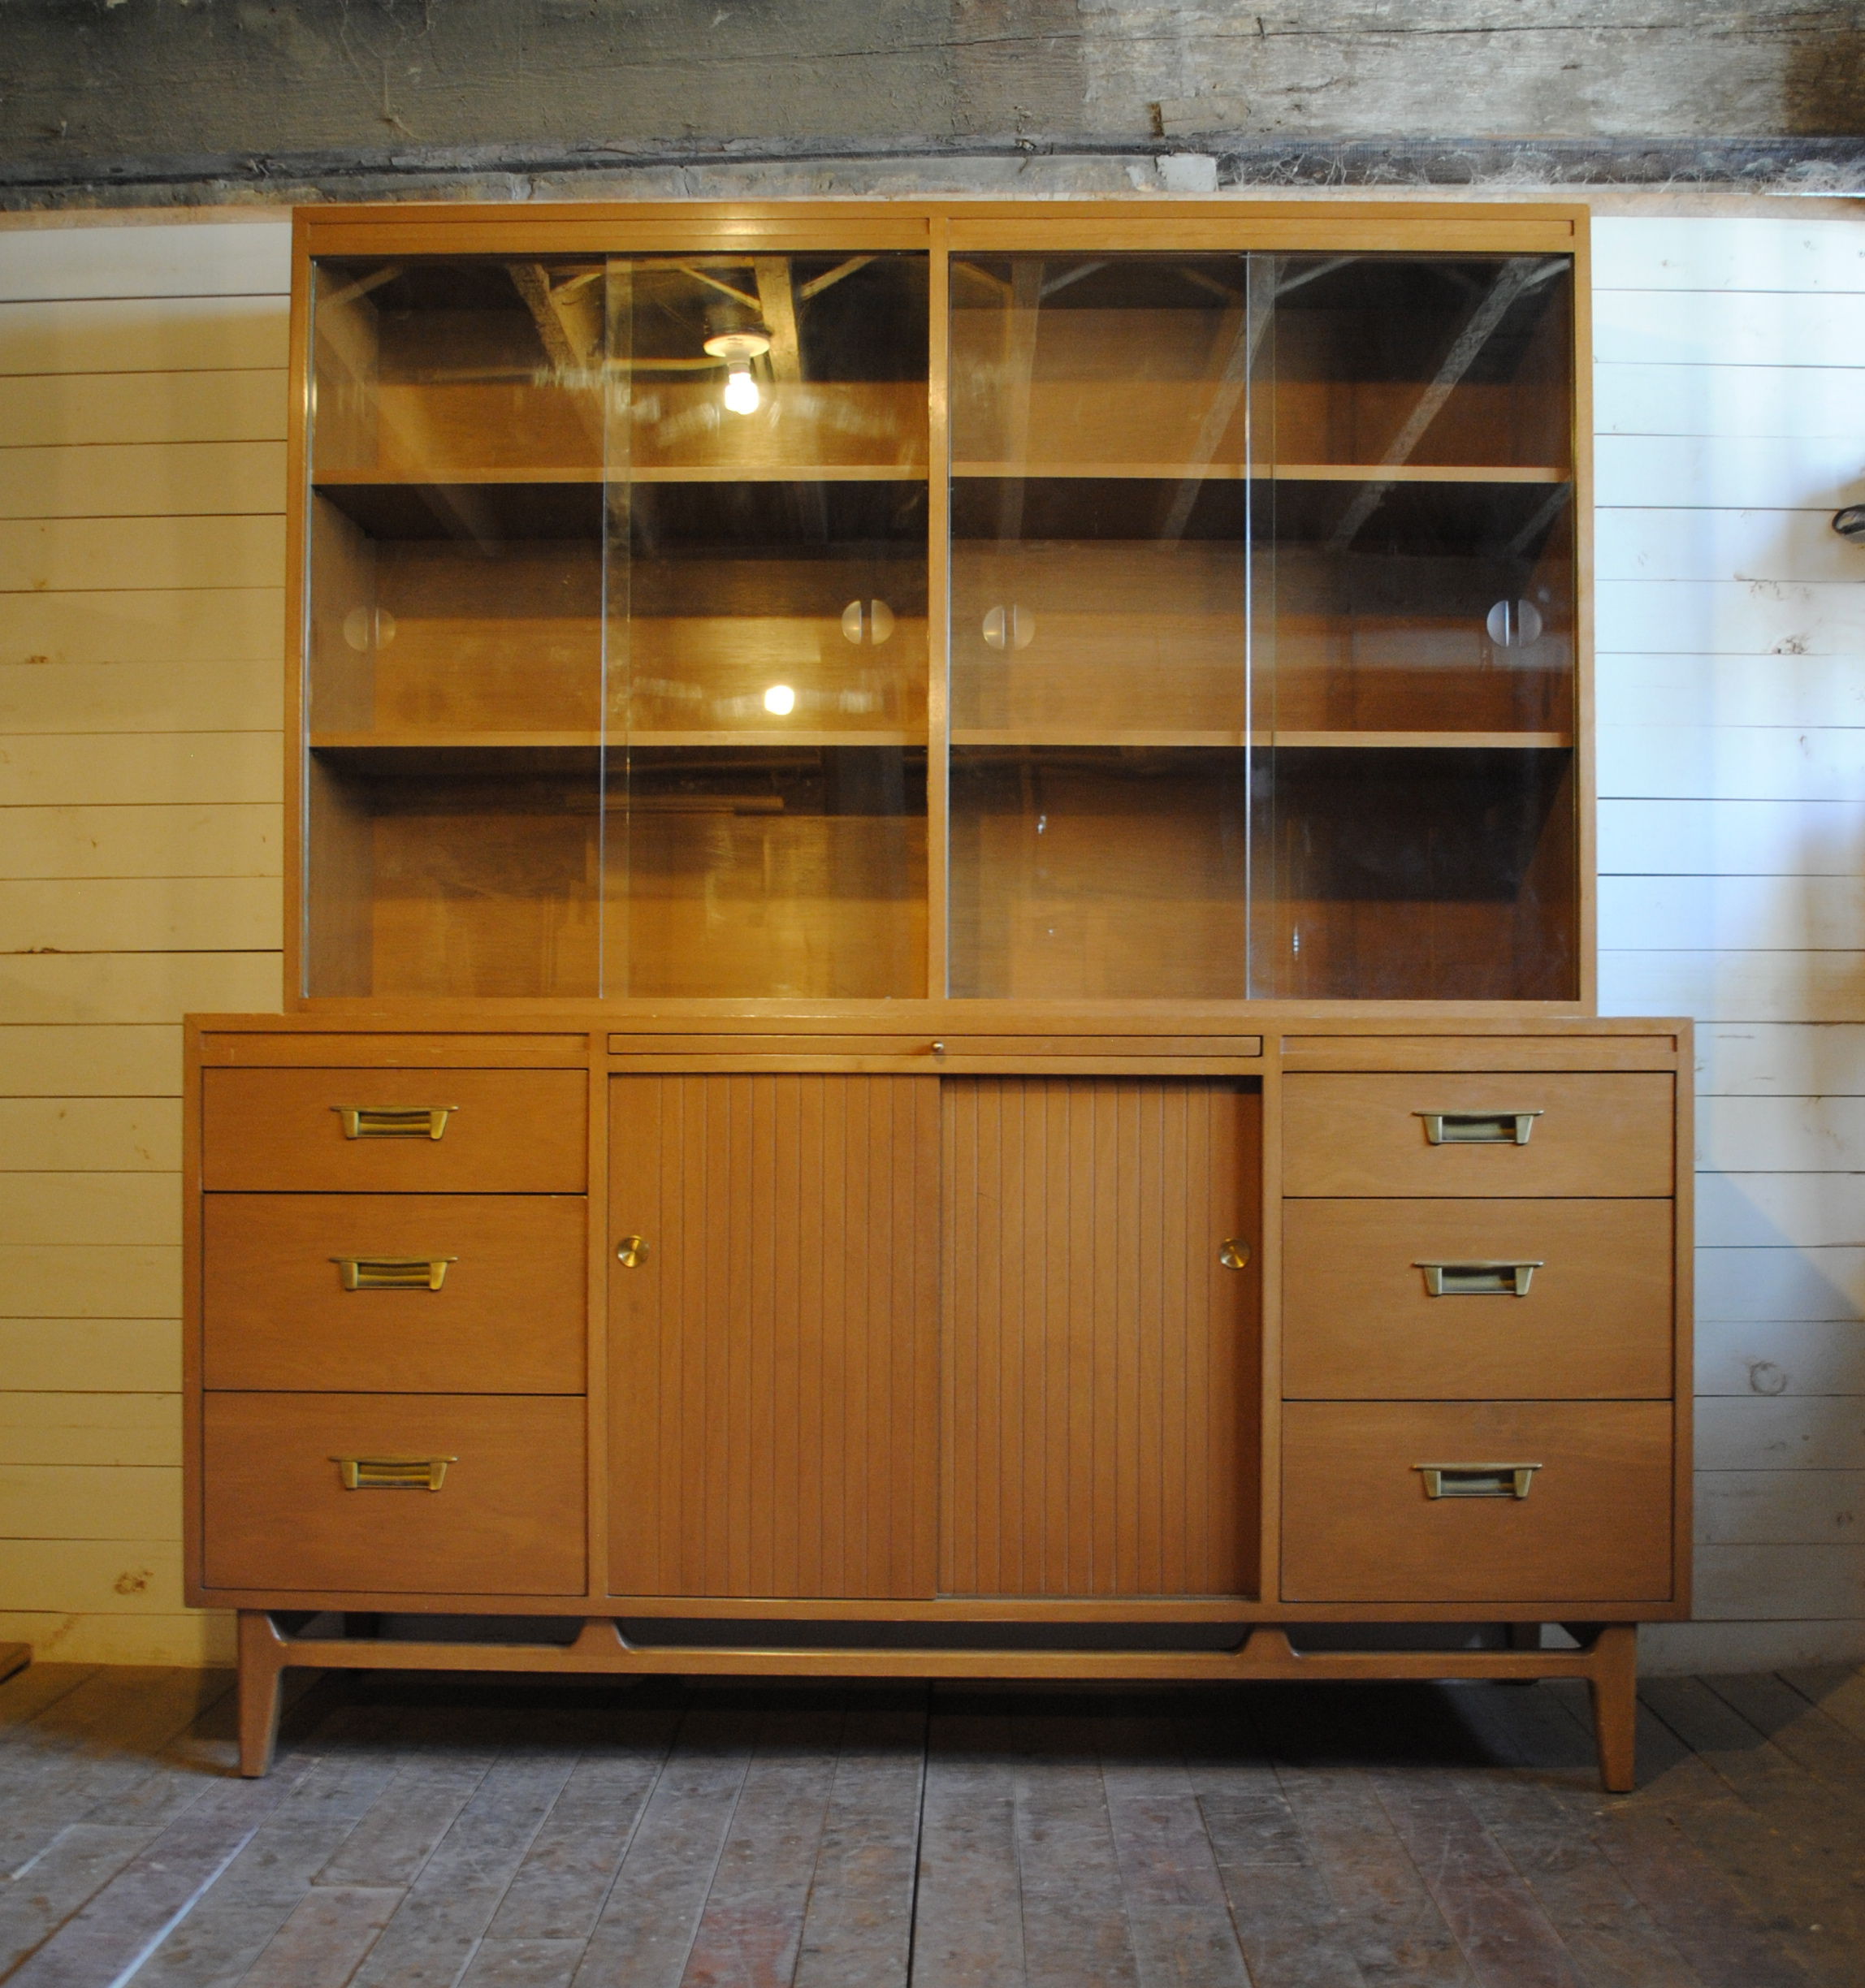 Beautiful Mid Century Credenza And Hutch Has Sliding Glass Doors All Shelving Is Adjule Or Can Be Removed Dimensions Are 60 W X 19 D 31 H